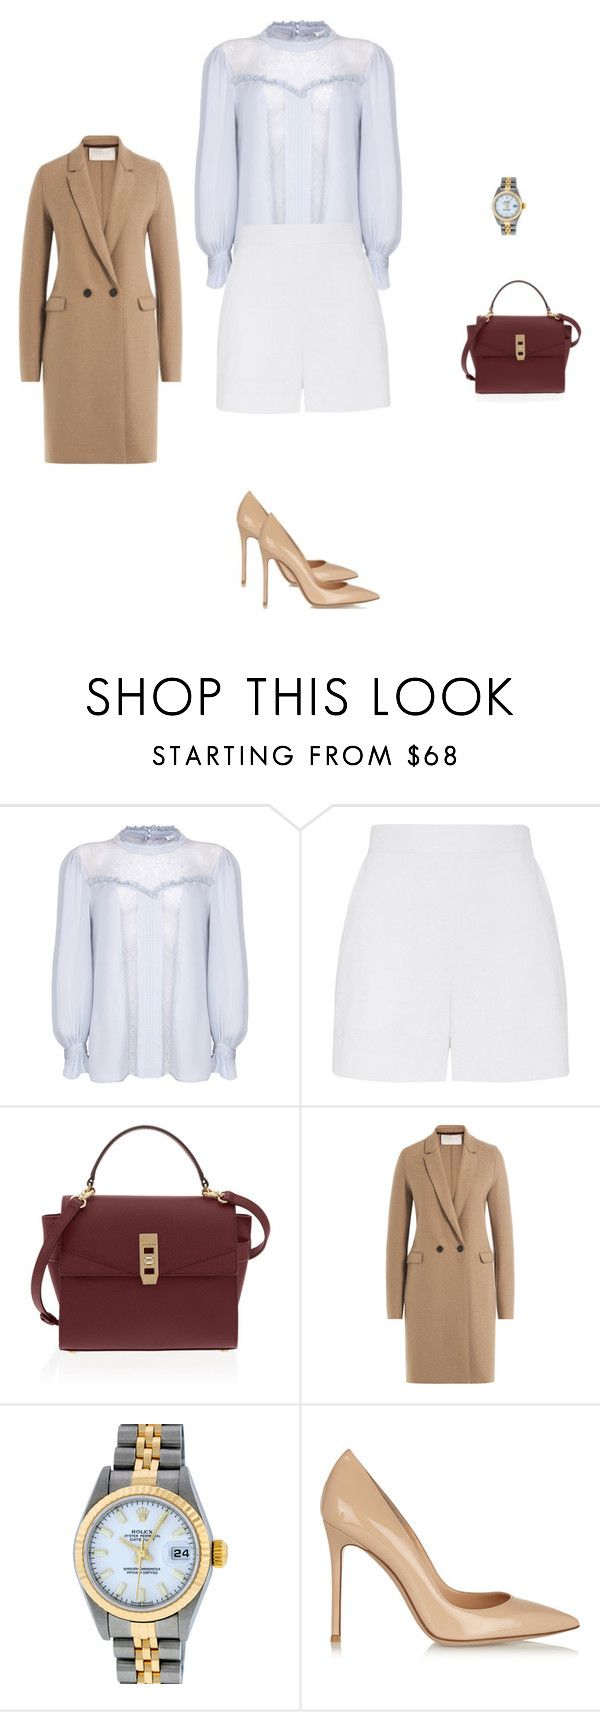 """""""Untitled #4268"""" by explorer-14576312872 ❤ liked on Polyvore featuring Ghost, Henri Bendel, Harris Wharf London, Rolex and Gianvito Rossi"""